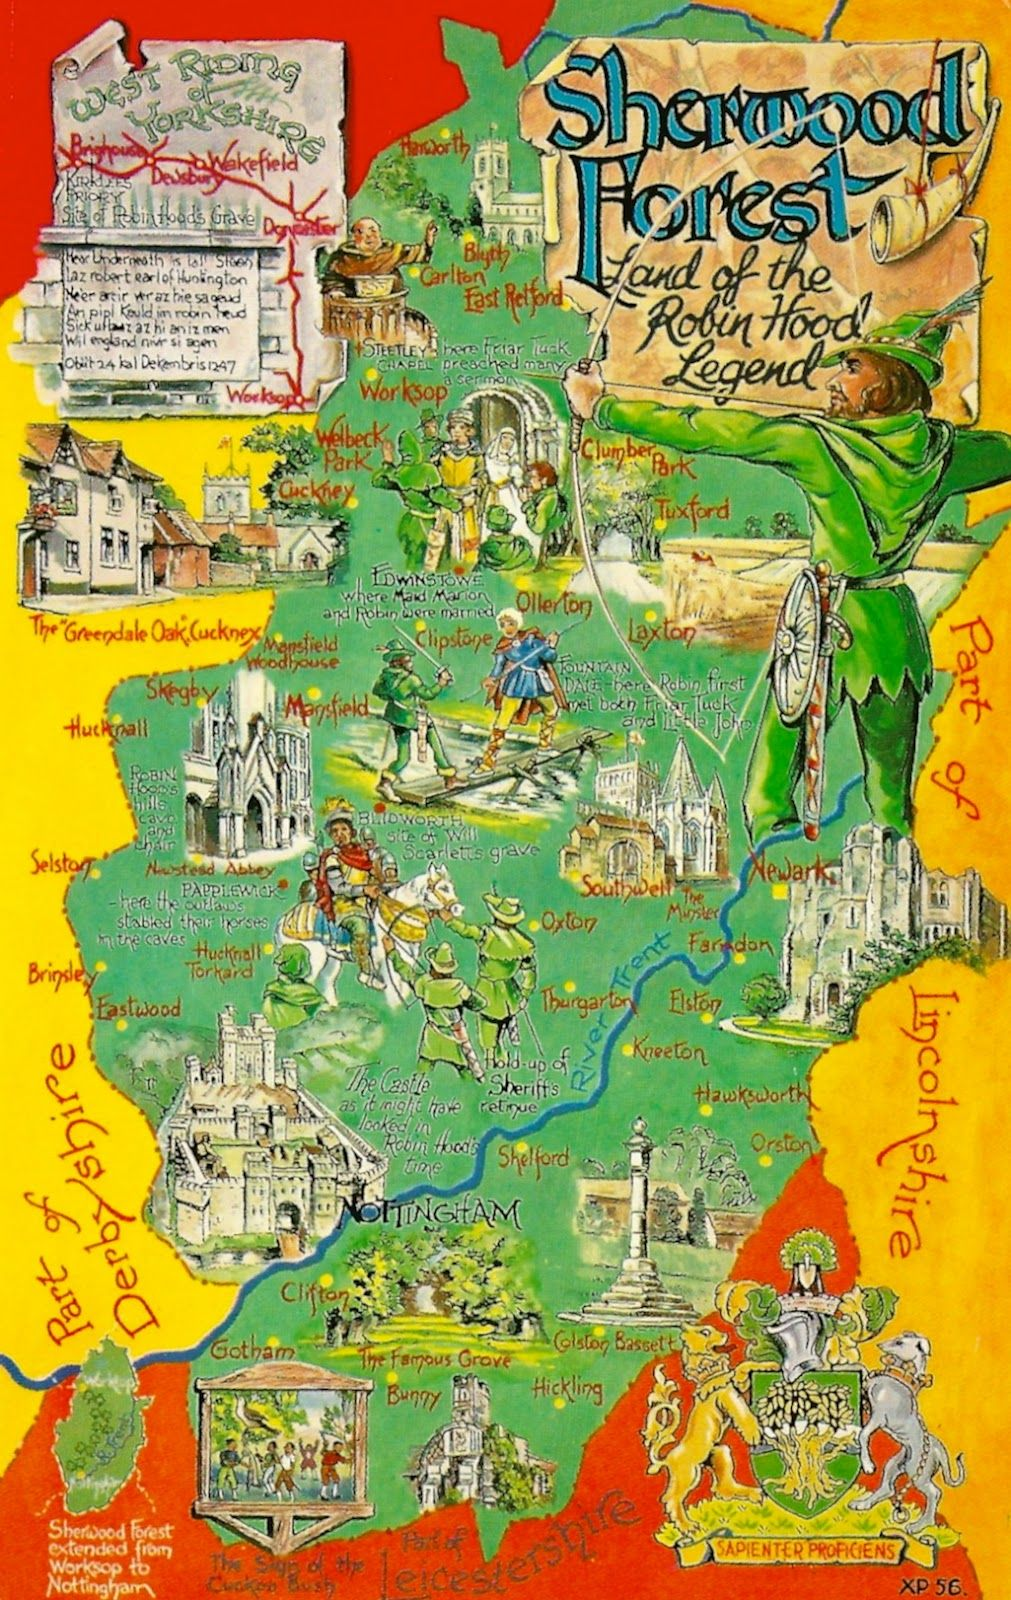 Map Of England 1600.Pin By Lynette D On Crafts And Stuff In 2019 Sherwood Forest